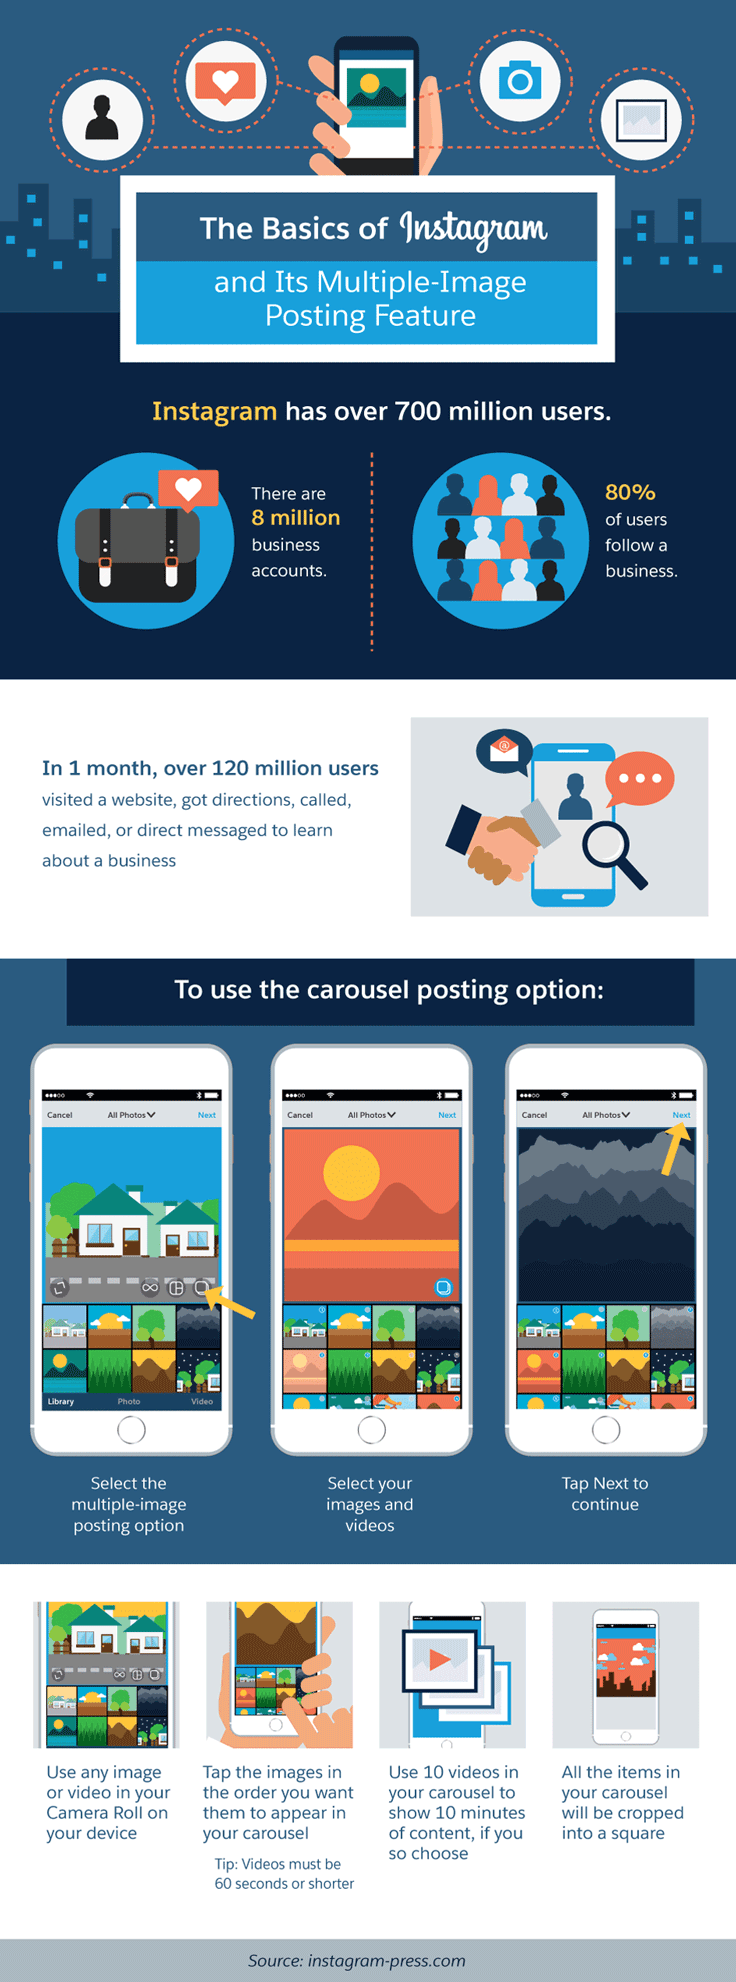 Instagram marketing tips: Carousel feature lets you combine up to 10 images in a slideshow. Check this infographic for the basics of adding multiple photos to your Instagram post!